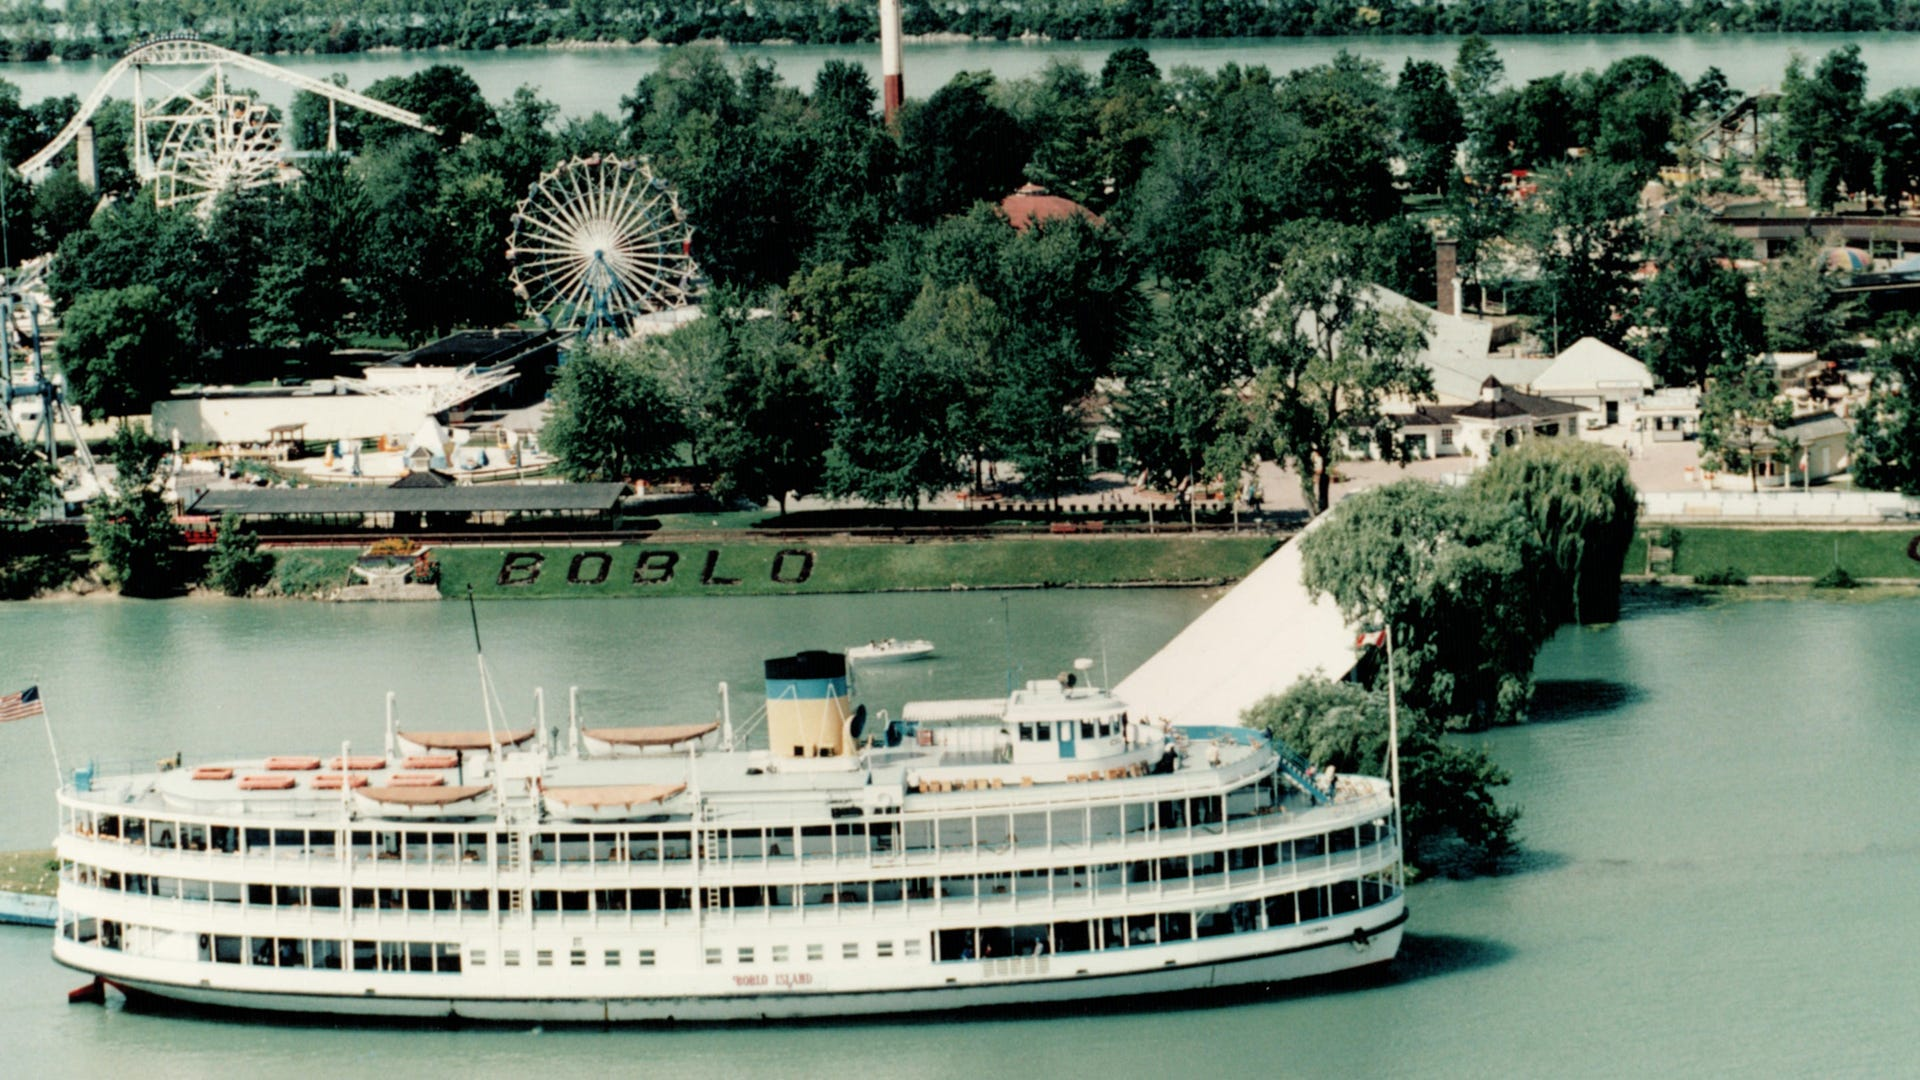 """WATCH: See an excerpt from new """"Boblo Boats: A Detroit Ferry Tale"""" documentary"""